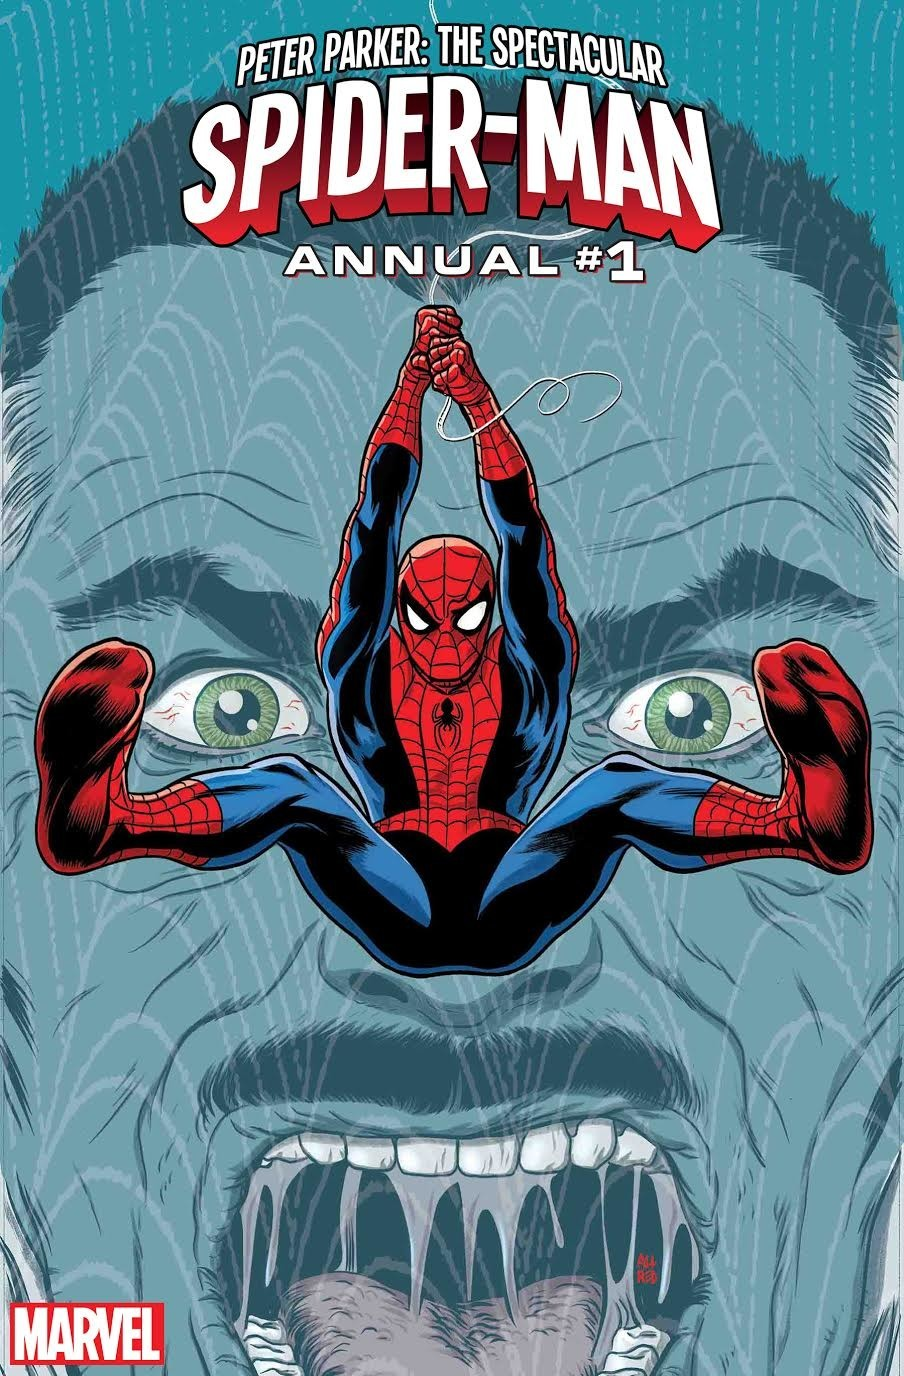 Chip Zdarsky for Marvel- Peter Parker: The Spectacular Spider-Man Annuel #1 Cover